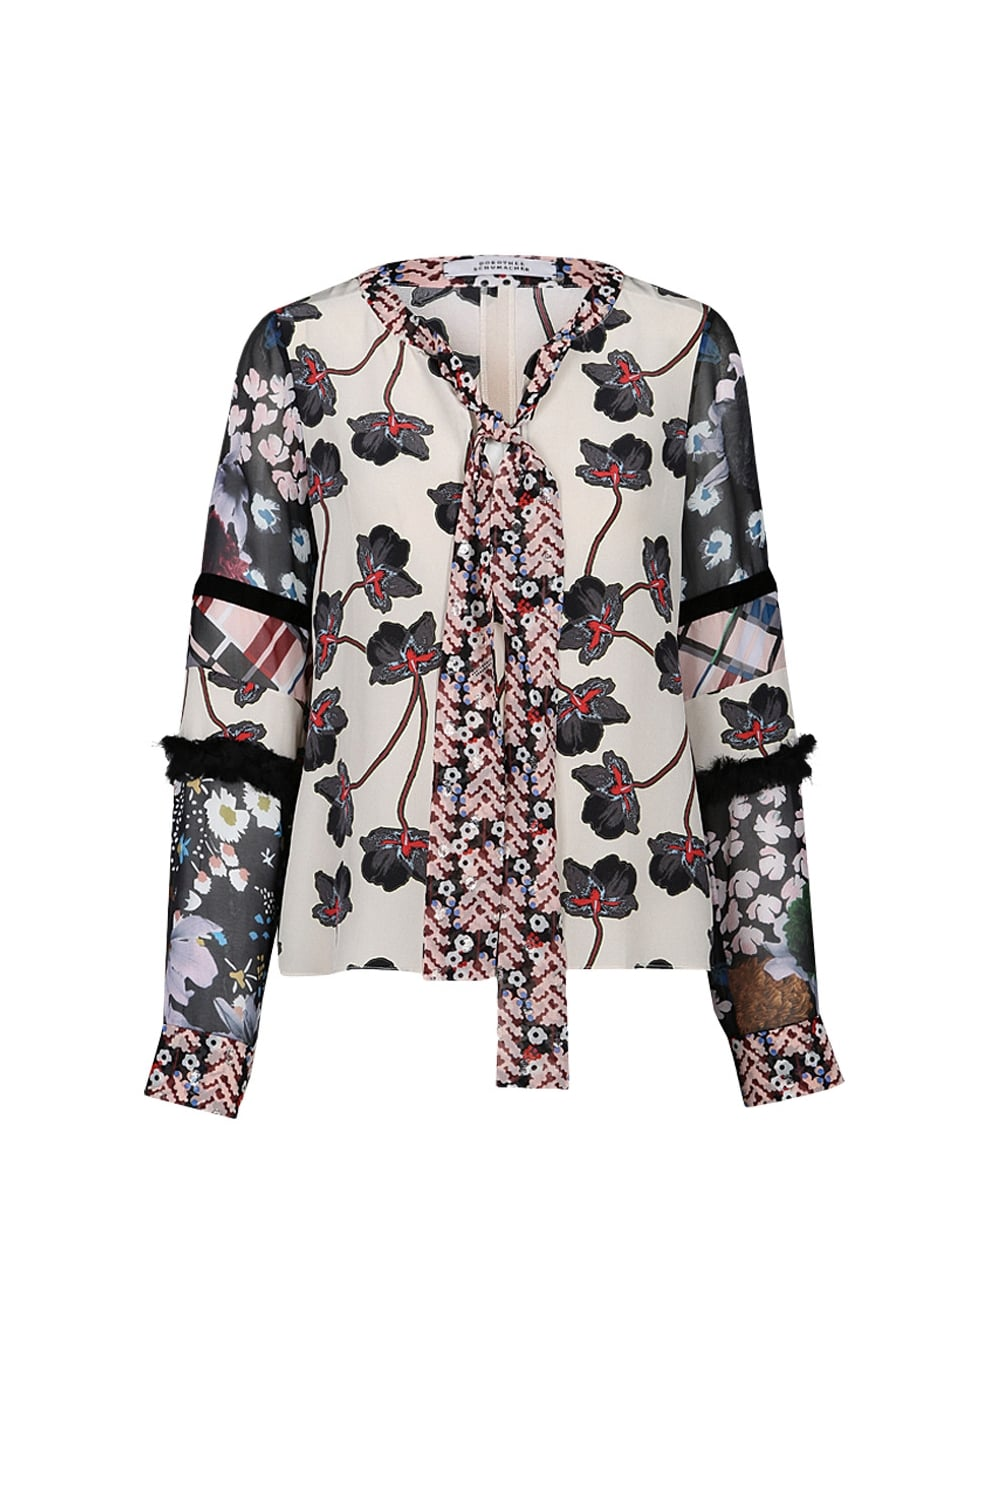 Dorothee Schumacher floral blouse Outlet Popular From China Free Shipping Low Price Free Shipping Pay With Paypal xzOJzTd